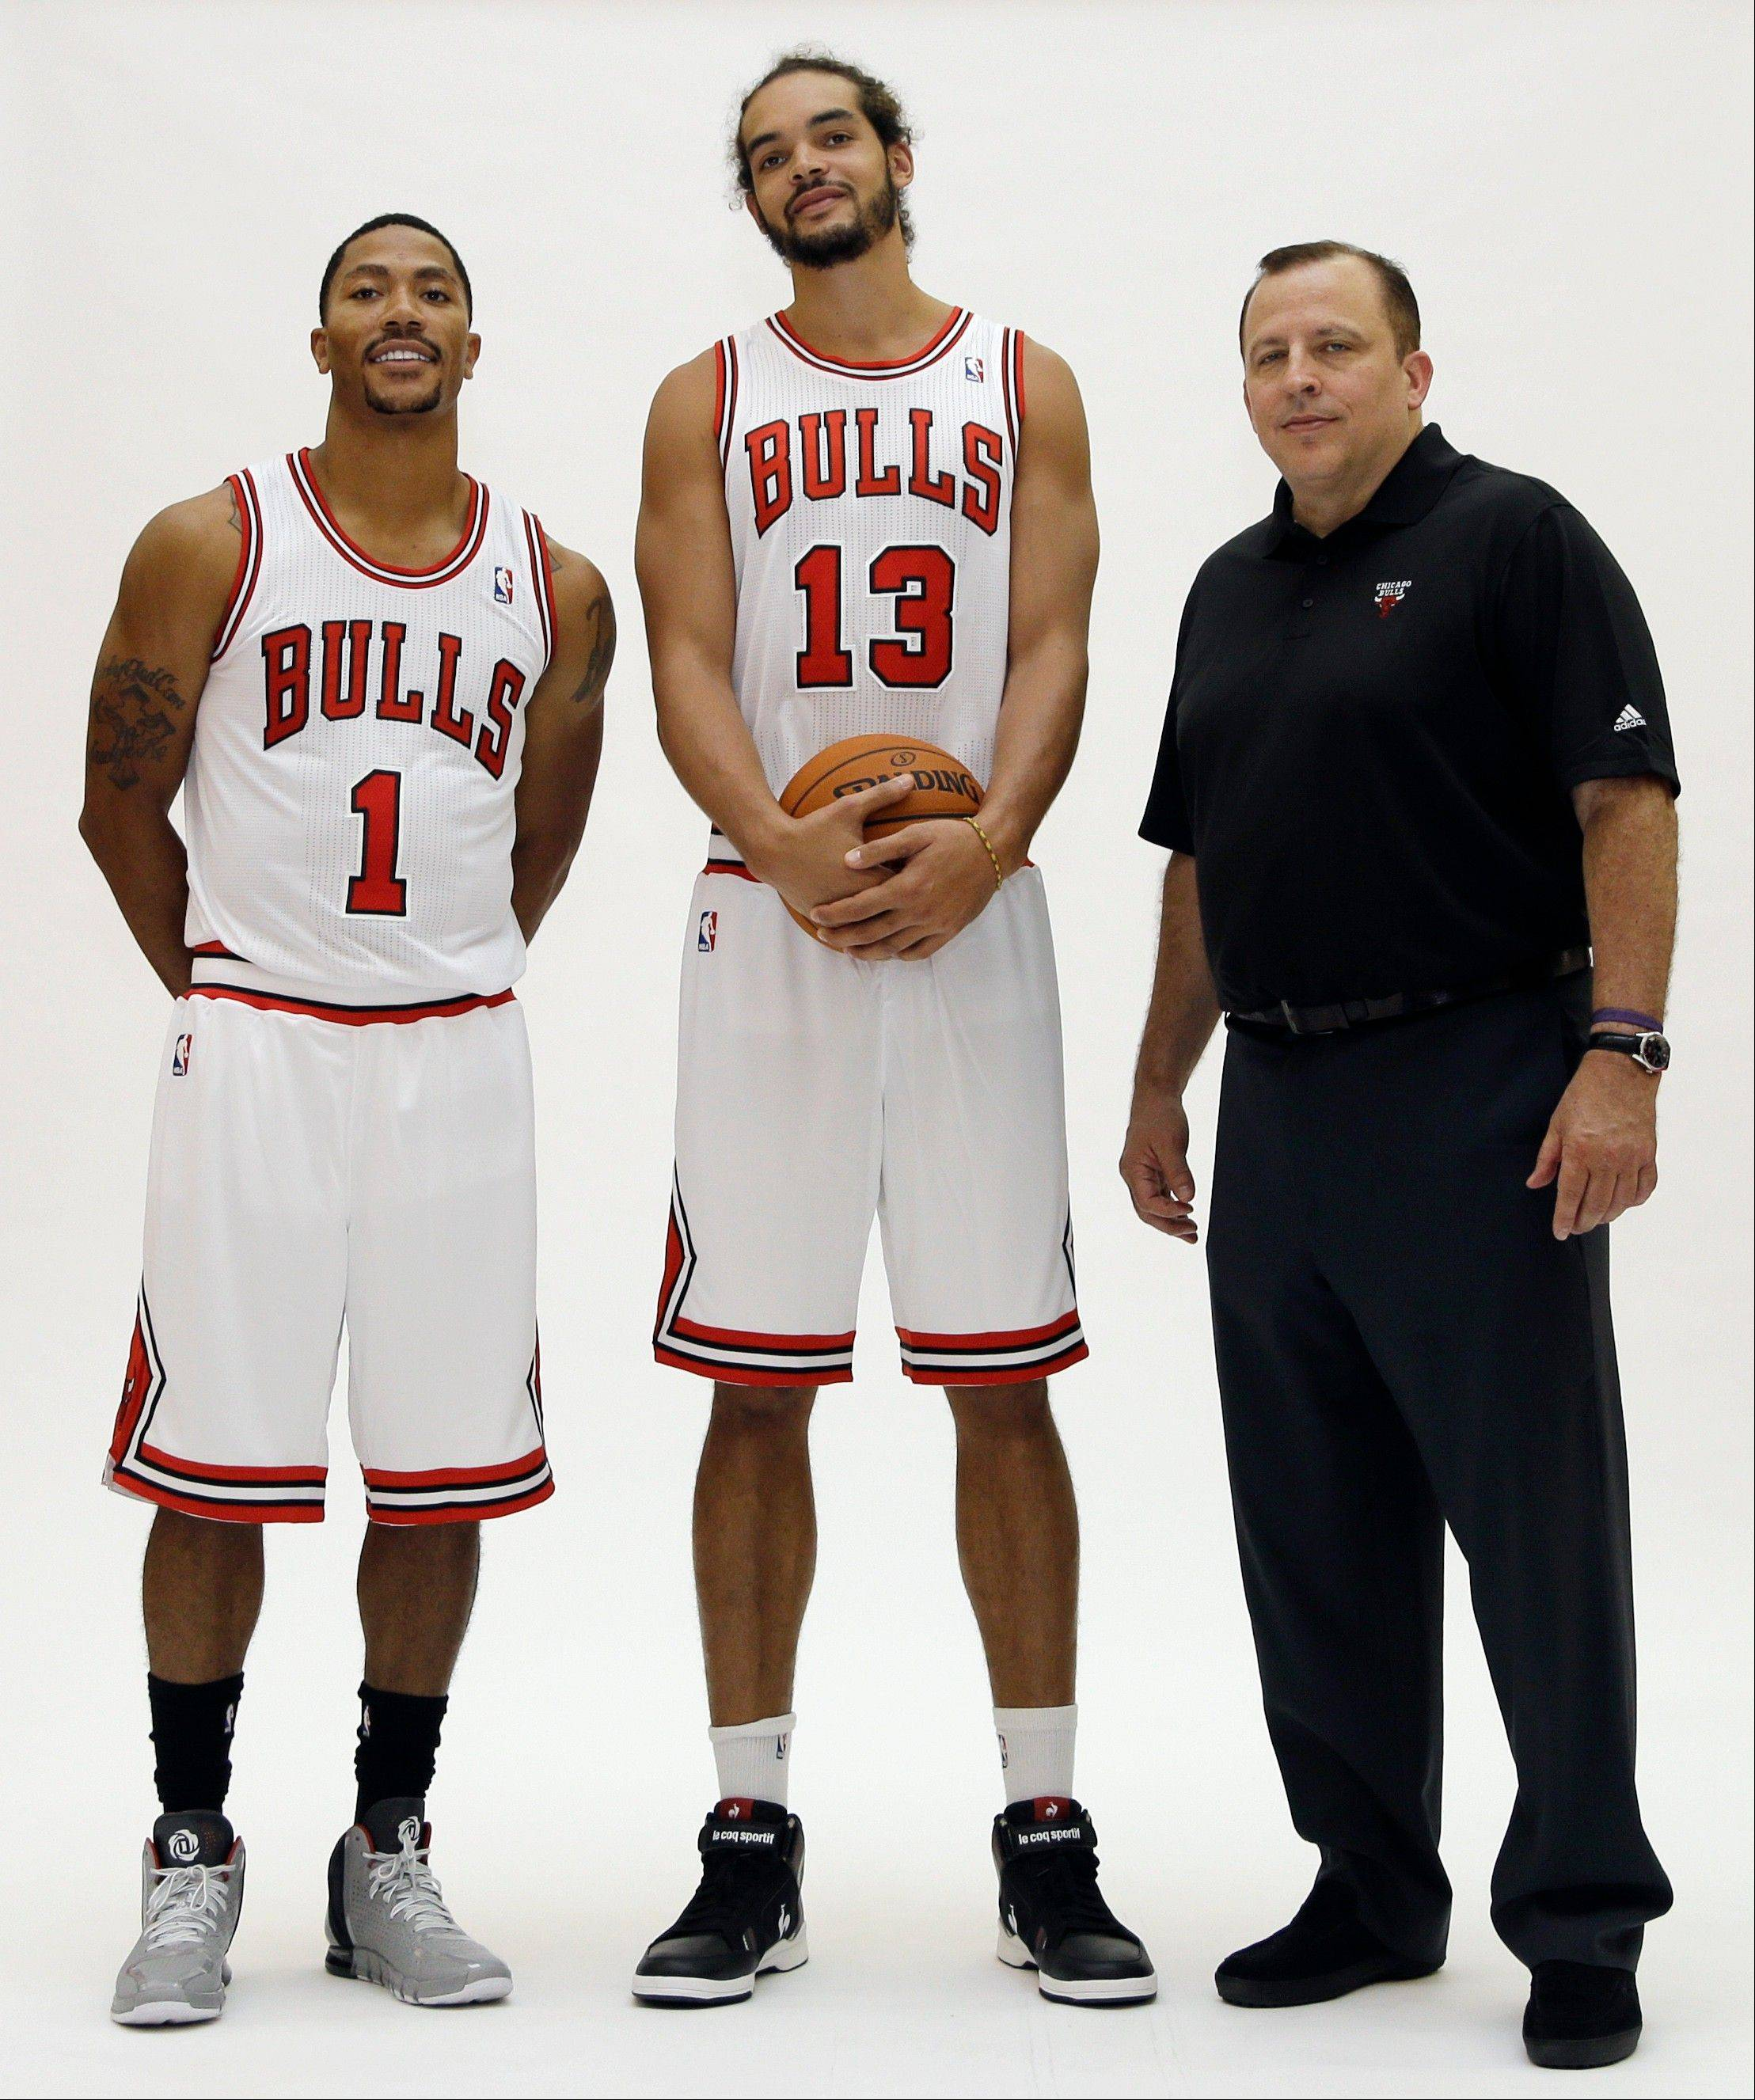 Bulls guard Derrick Rose, left, center/forward Joakim Noah, center, and head coach Tom Thibodeau pose for photos during NBA basketball media day at the Sheri L. Berto Center on Friday, Sept. 27, 2013., in Deerfield, Ill.